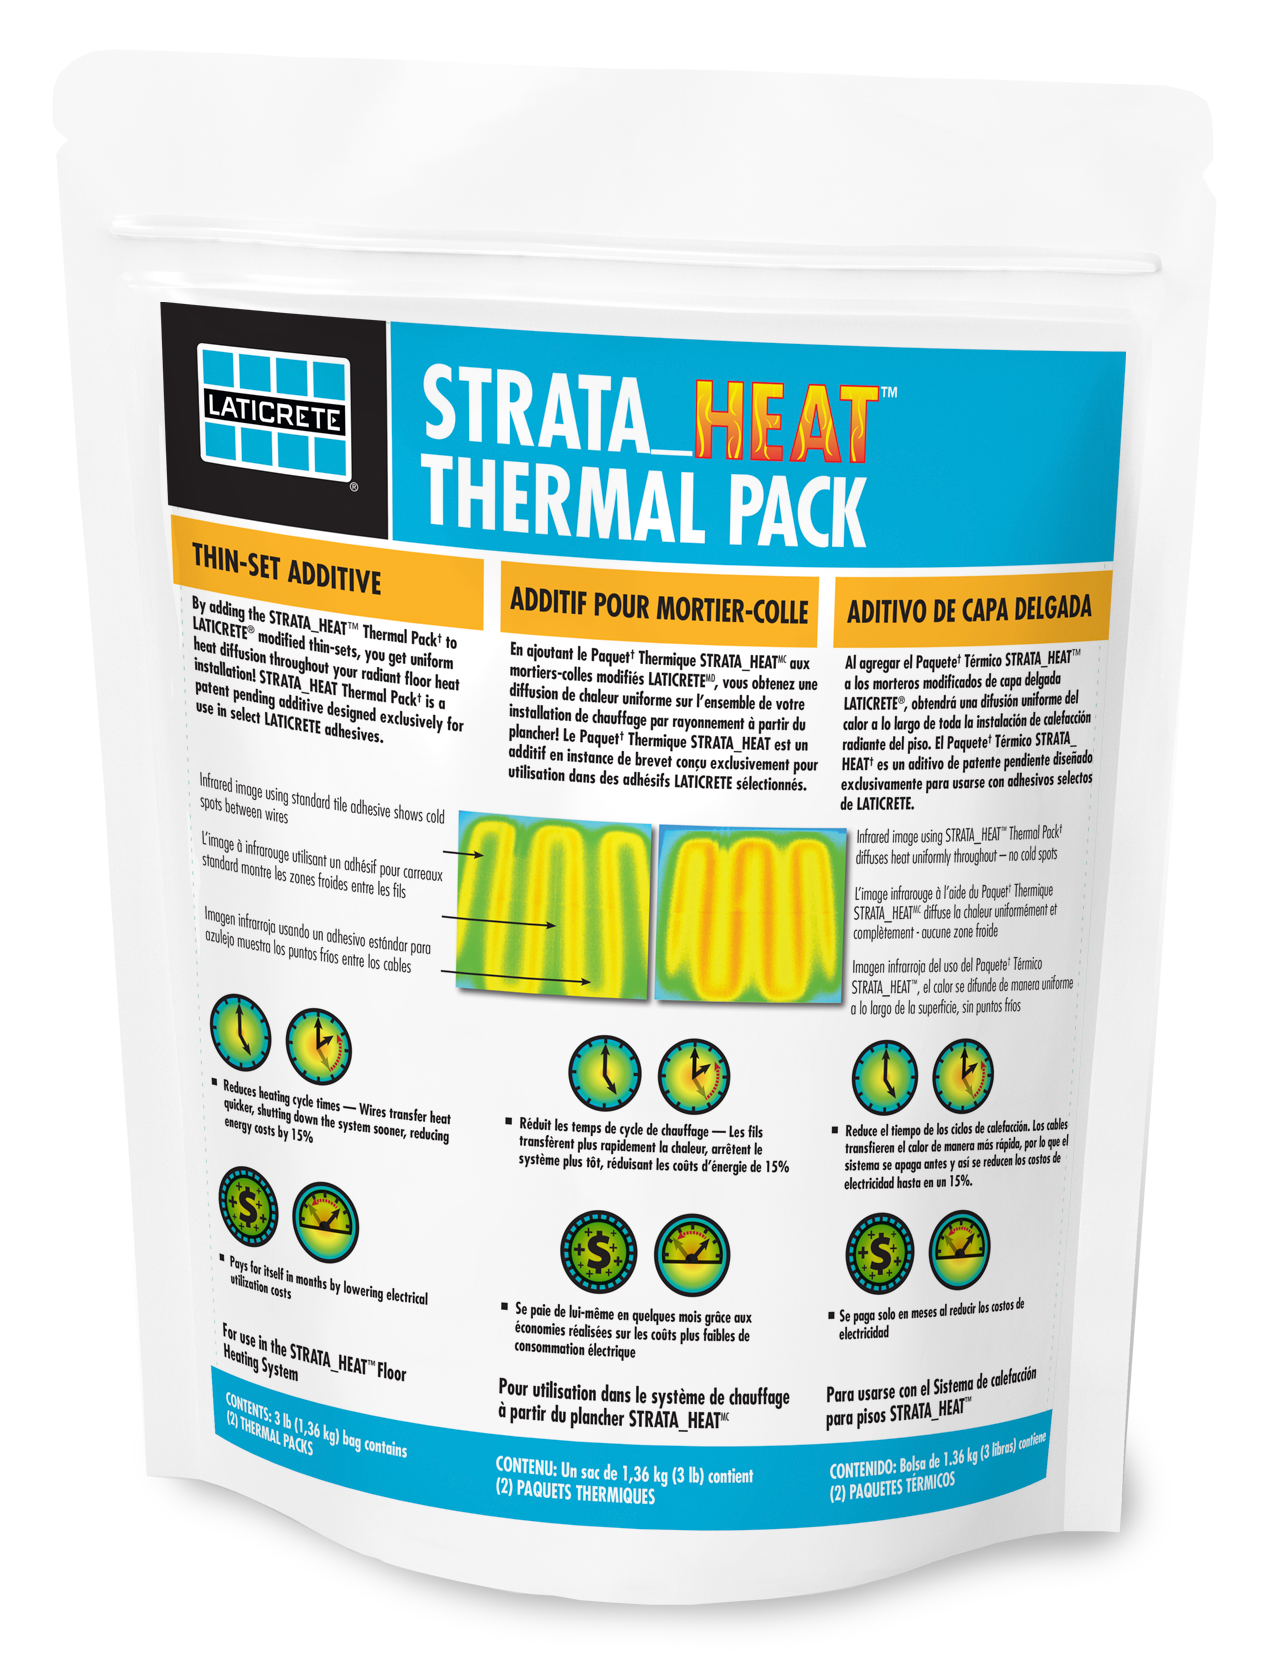 Available Only From Laticrete Strata Heat Thermal Pack Is A Patent Pending Additive Designed Exclusively For Use In Select Adhesives